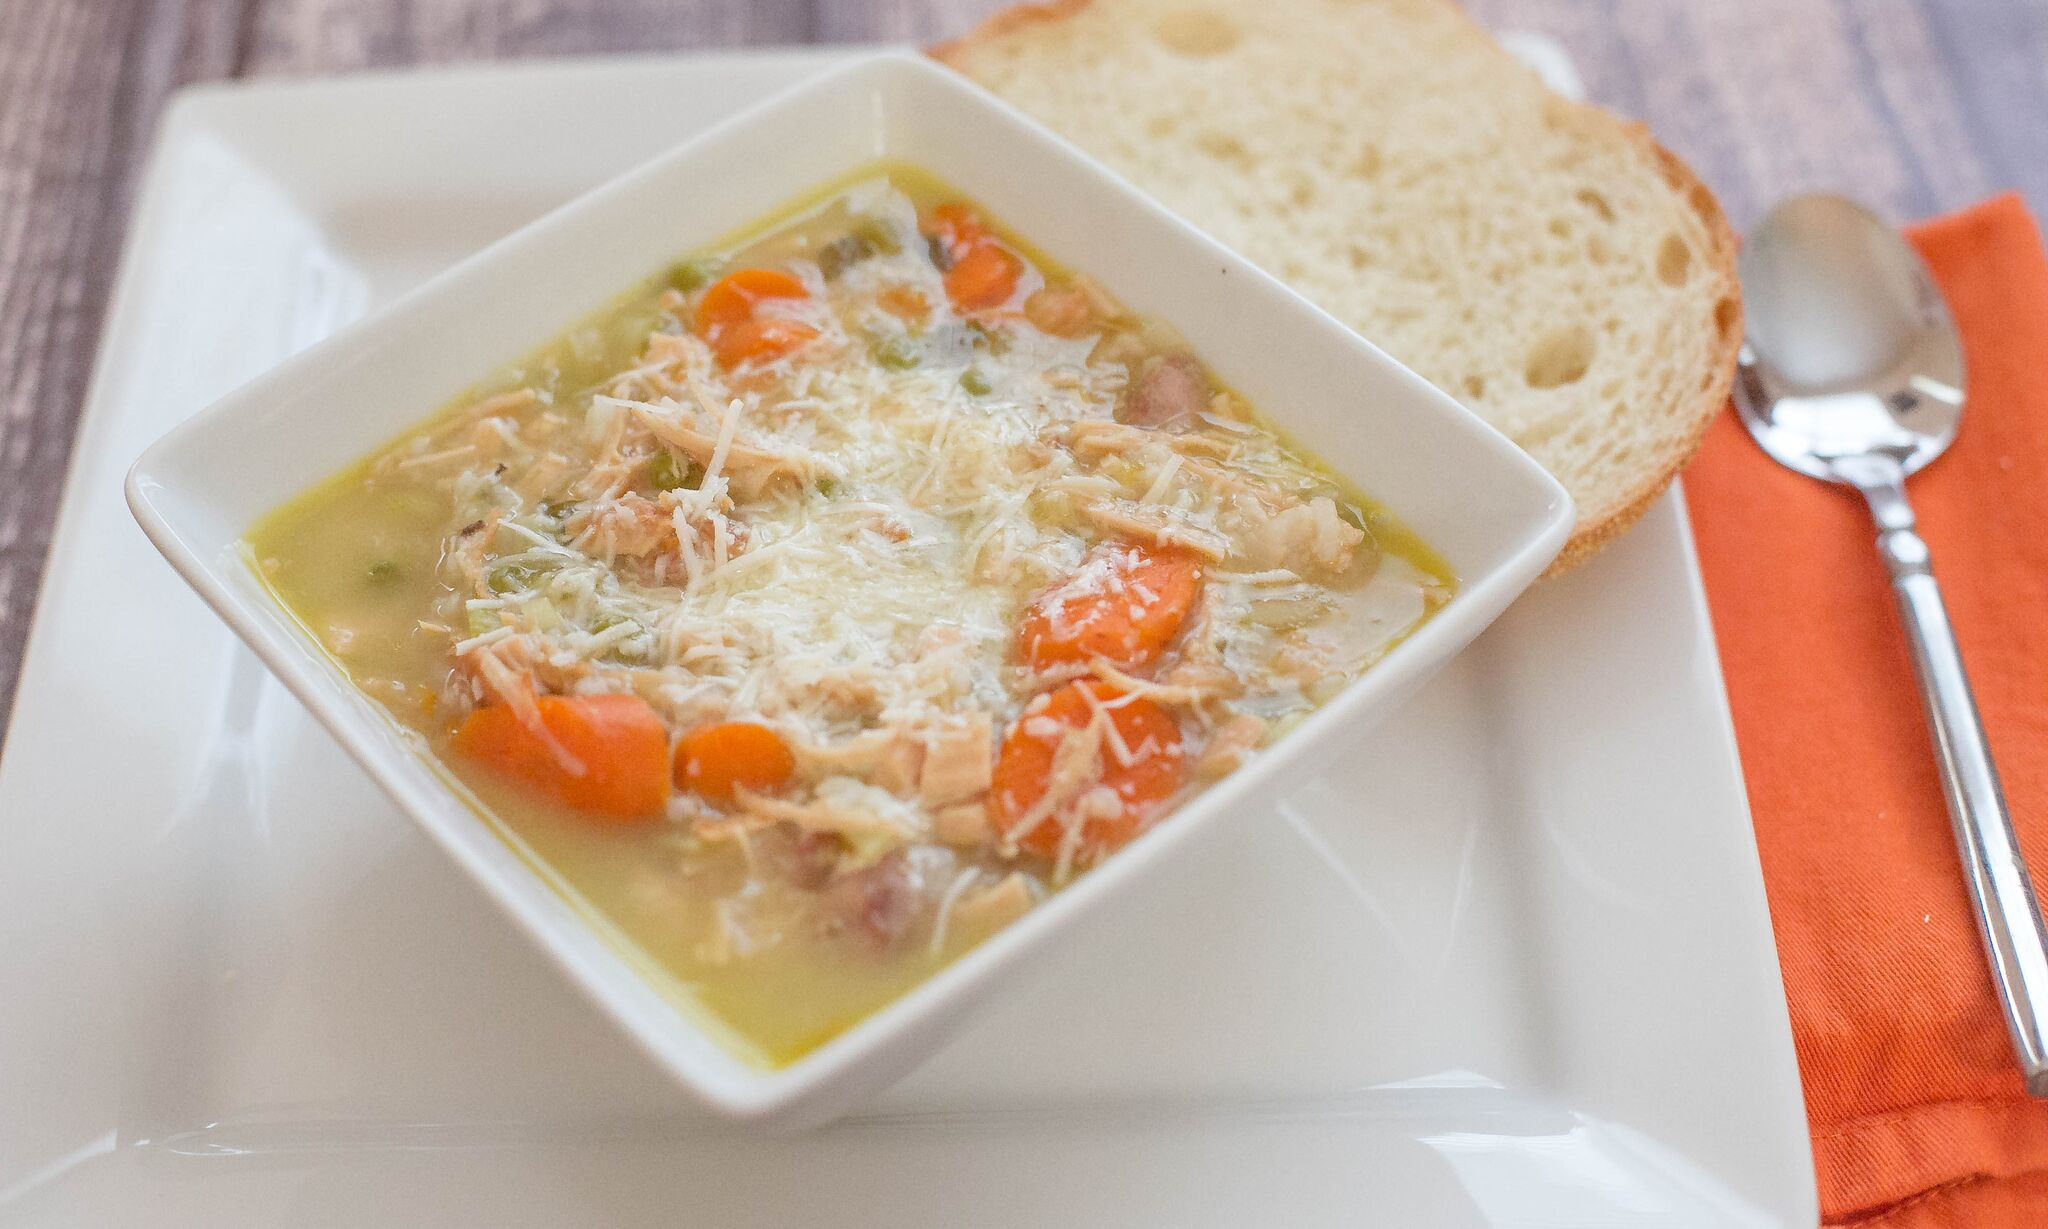 Turkey & Rice Soup | Serve this soup in a bowl topped with shredded parmesan cheese and with a slice of bread.